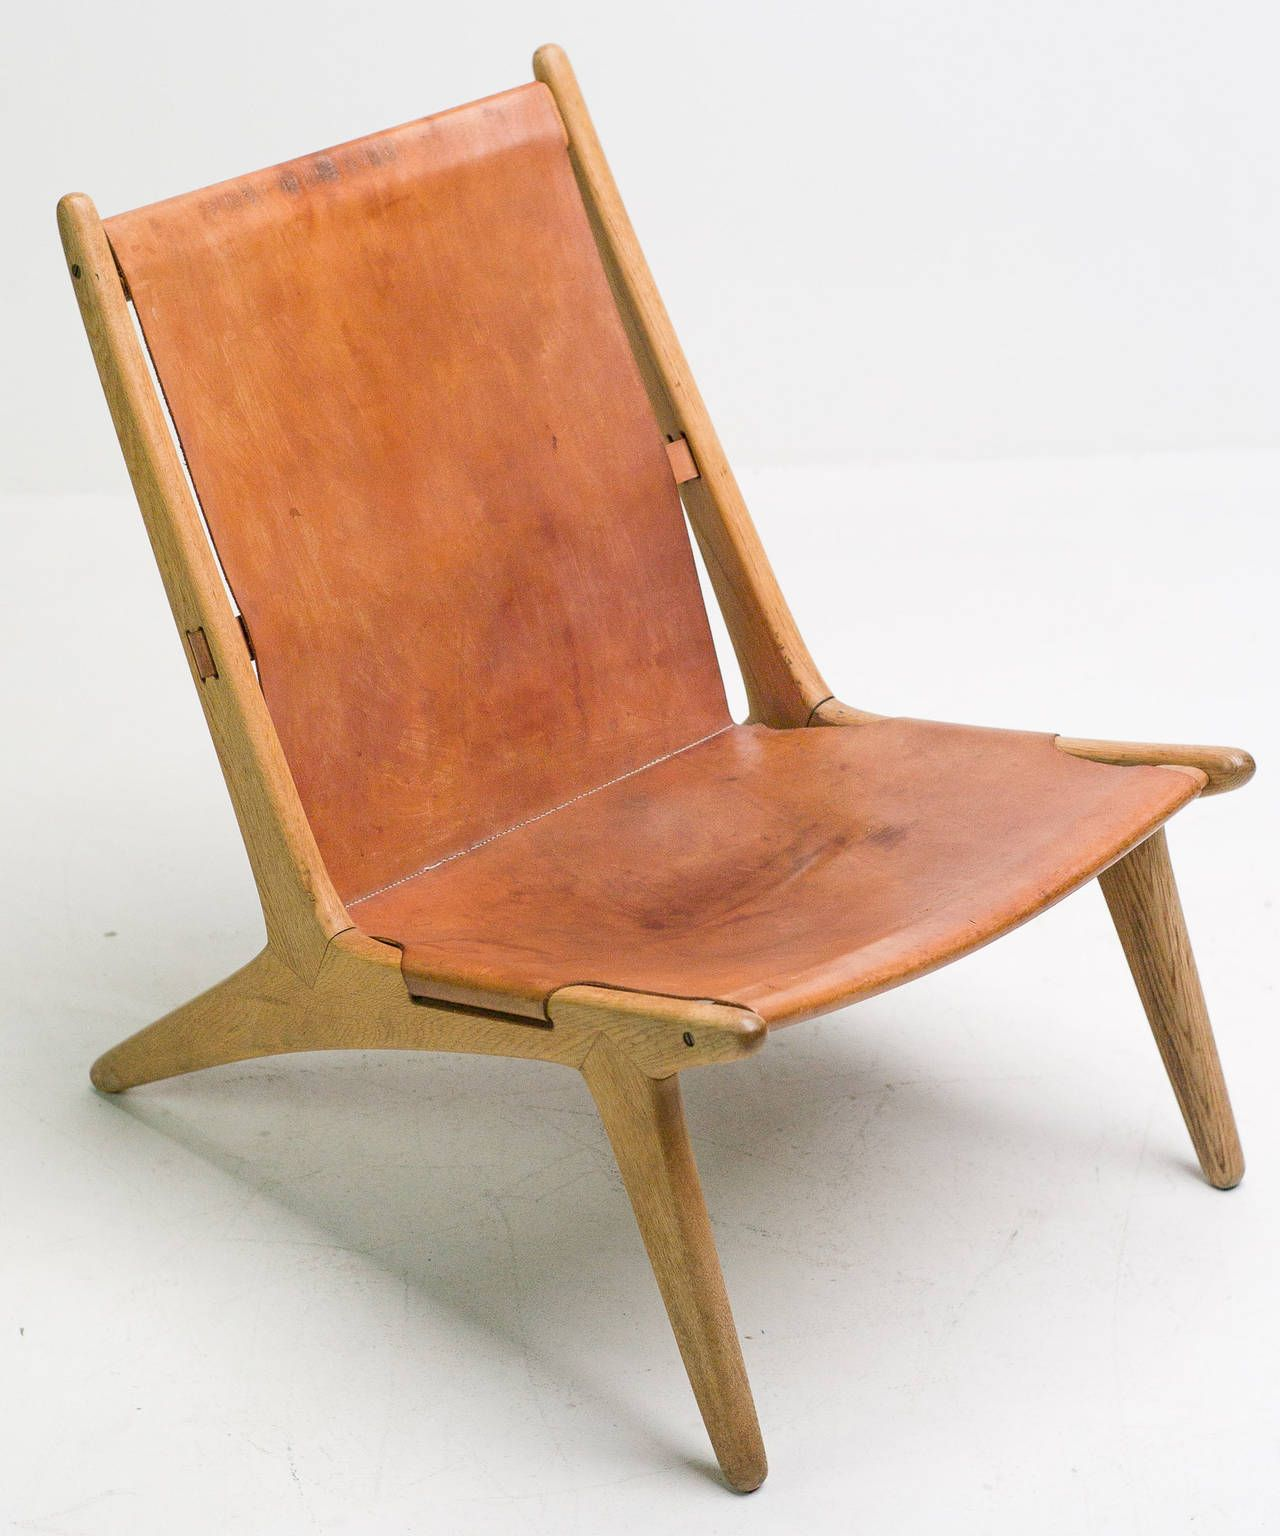 """Pair of """"Hunting Chair"""" model 204 by Uno & Osten Kristiansson"""